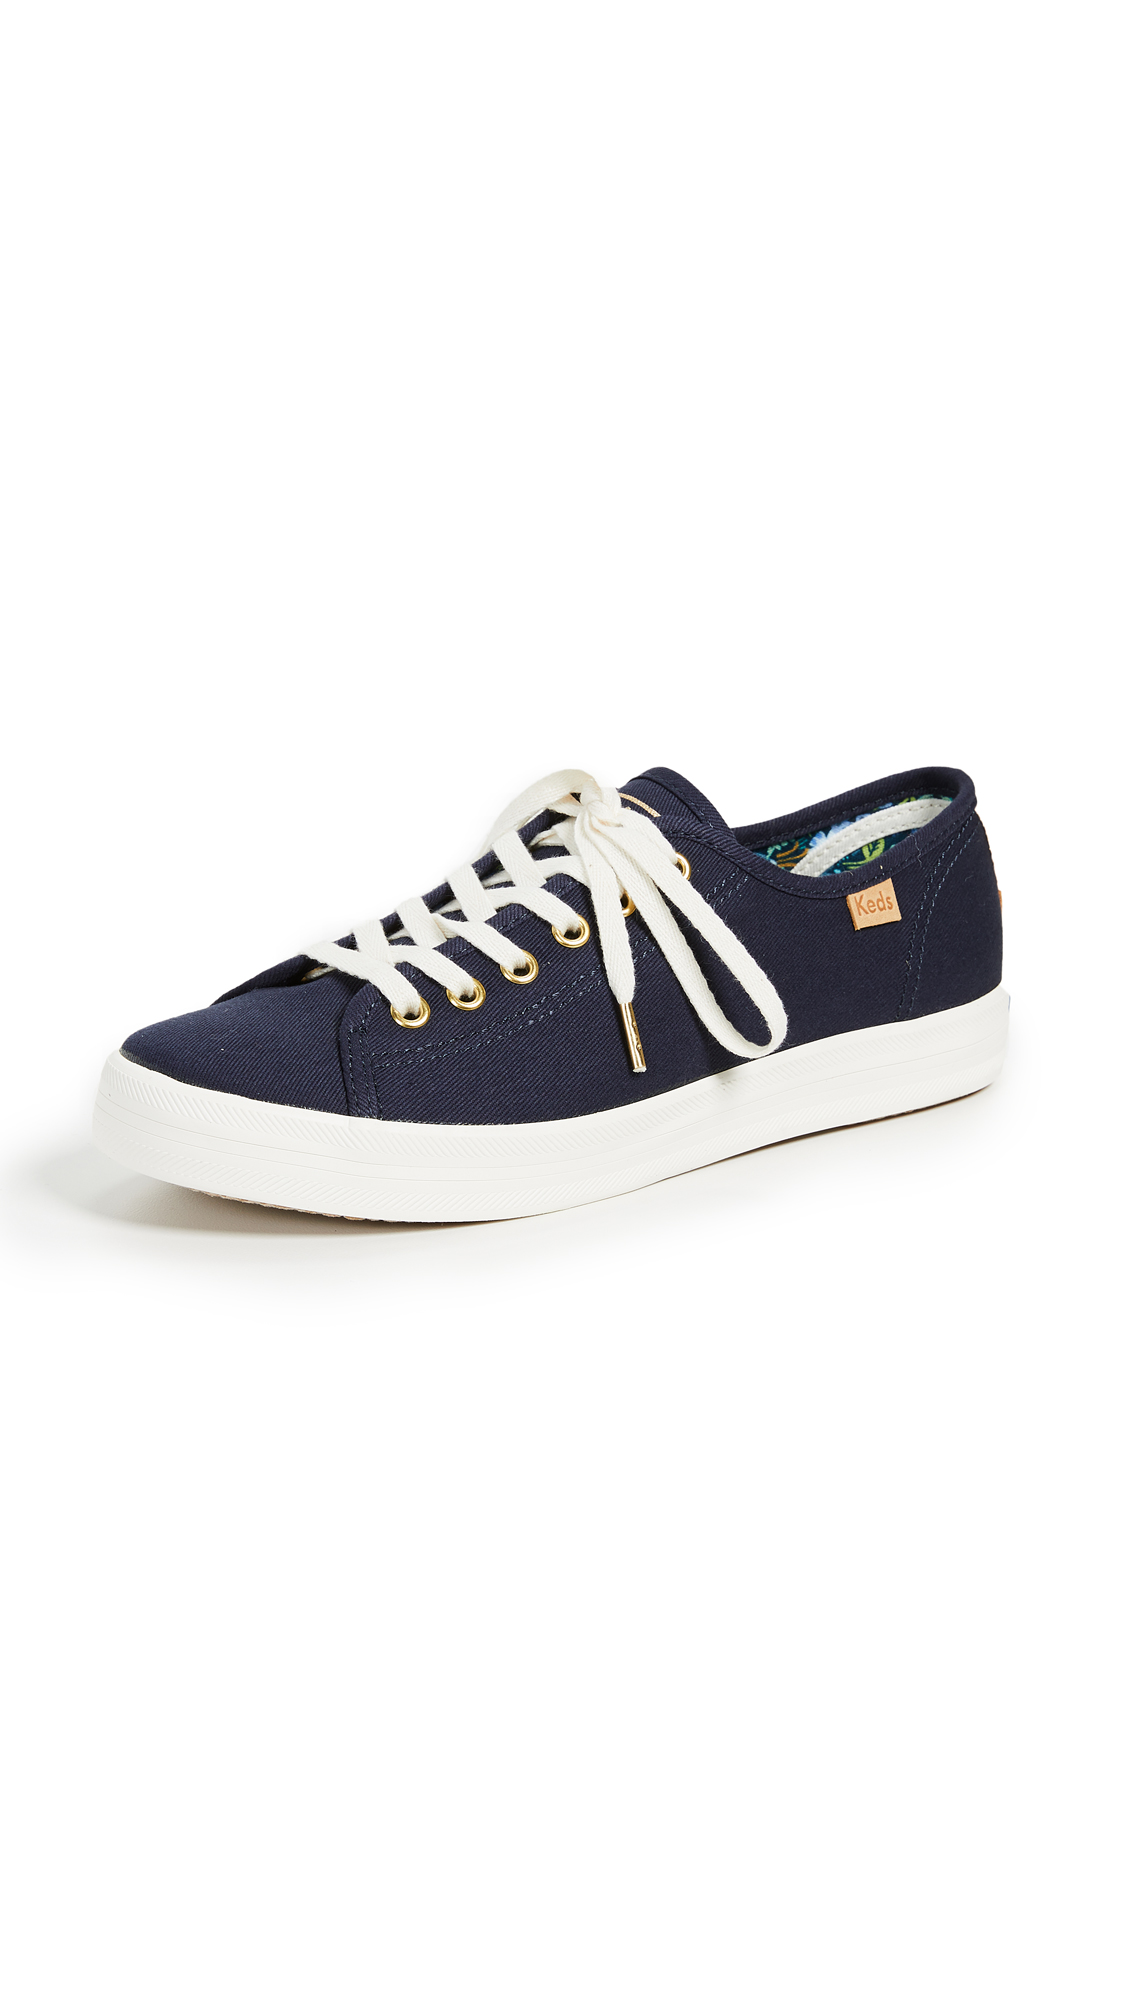 Keds x Rifle Paper CO Kickstart Sneakers - Blue